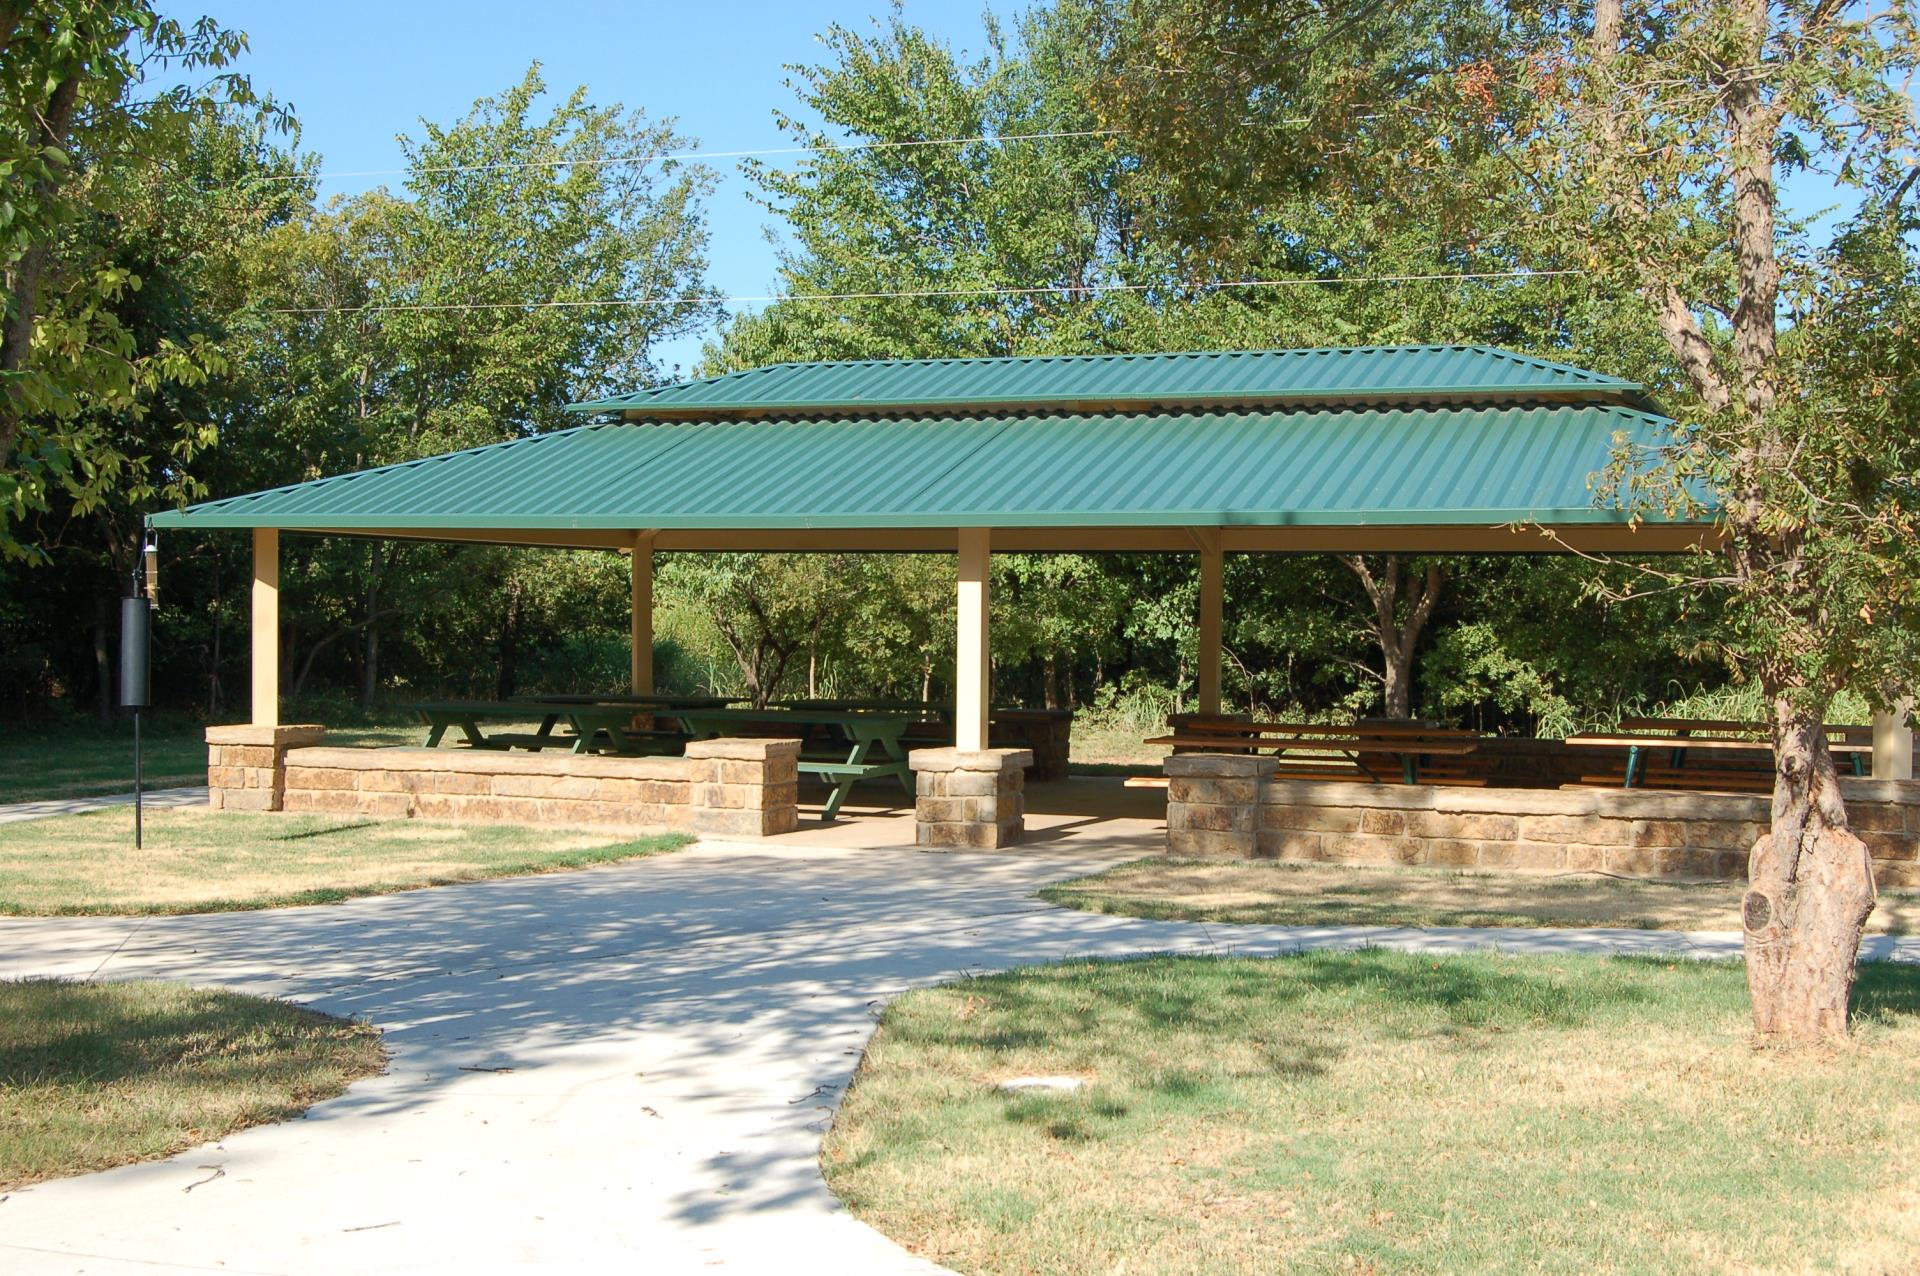 Martin Park Nature Center Picnic Shelter